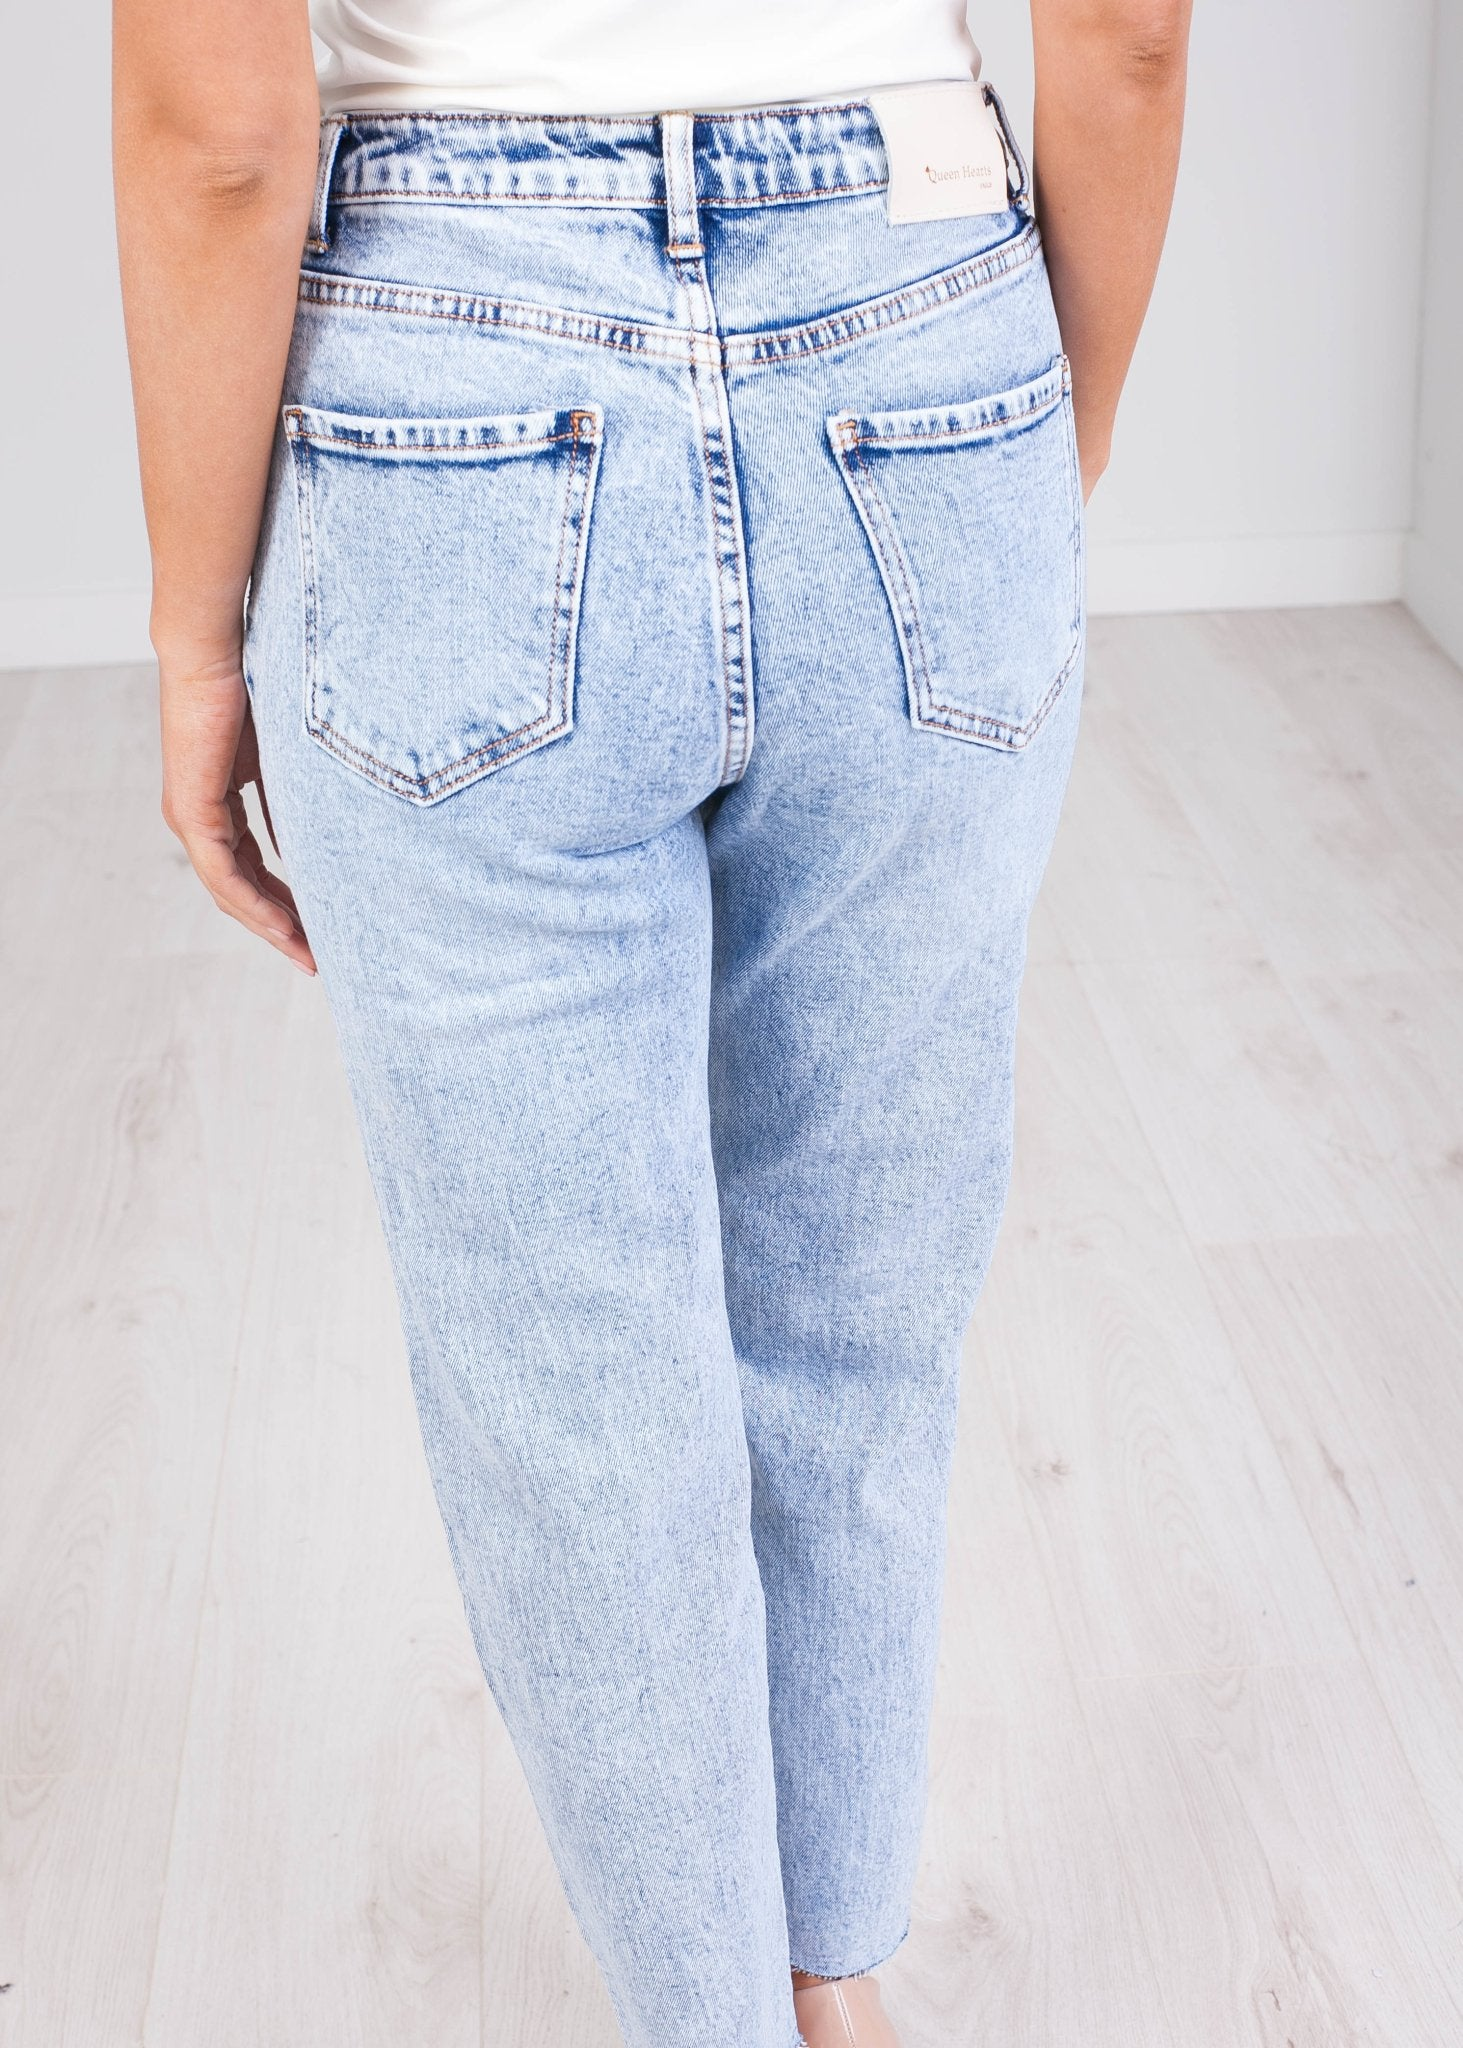 'Melissa' Straight Leg Jean - The Walk in Wardrobe